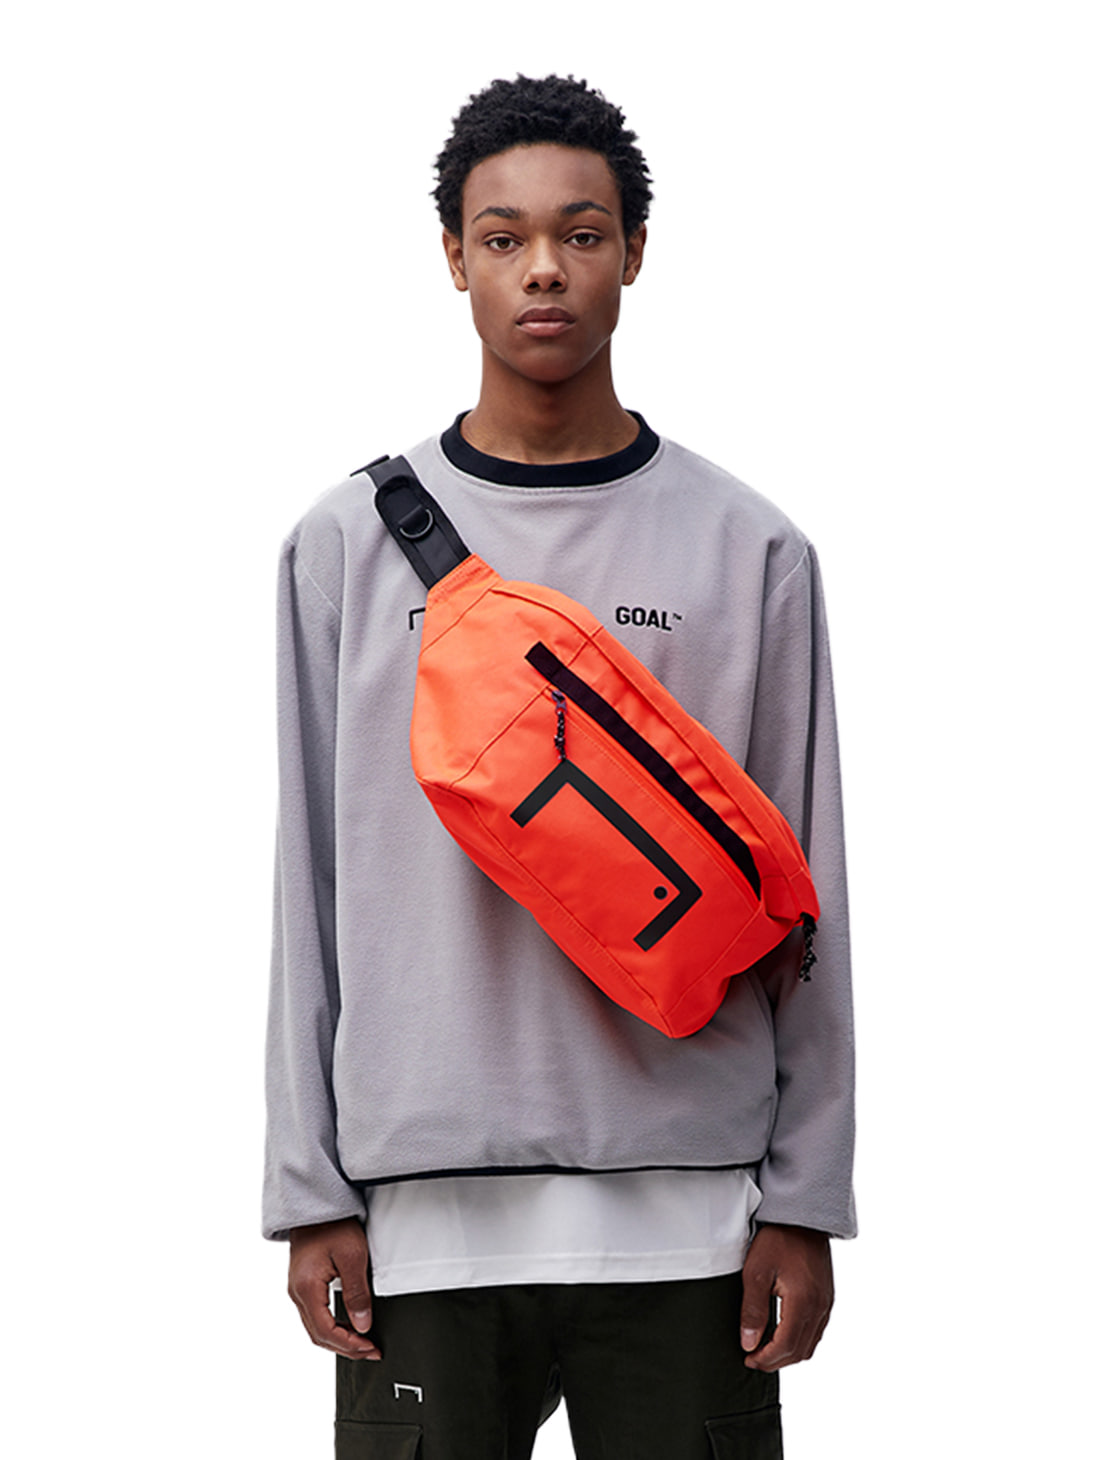 GOALSTUDIO FREESTYLE SLINGBAG - ORANGE